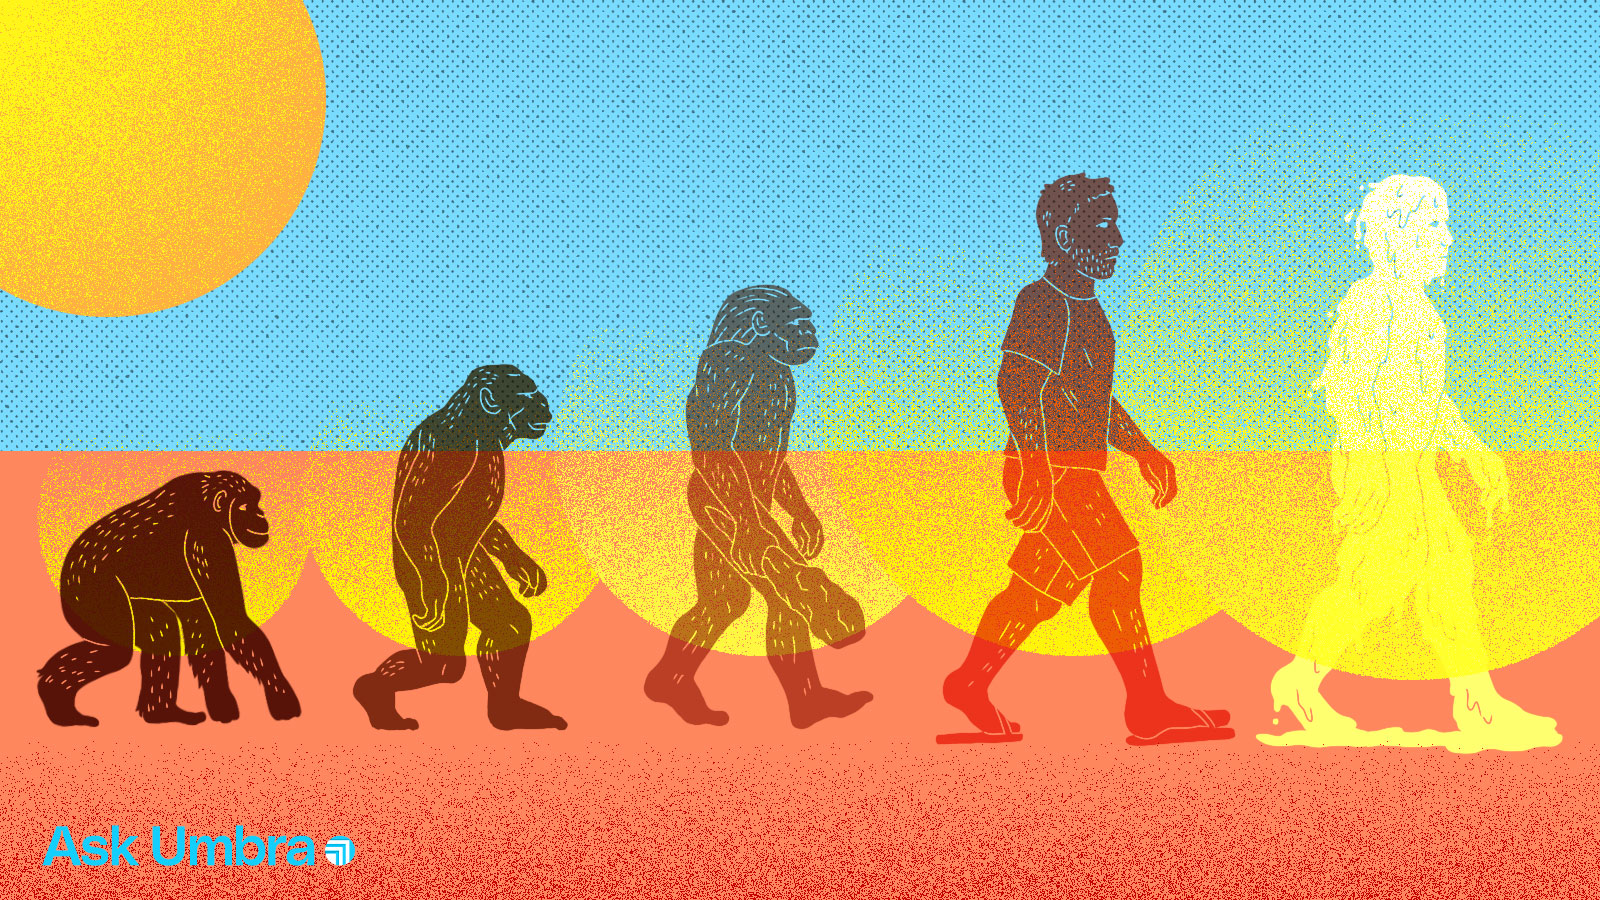 Illustration: a take on the Evolution of Man with an added melting human silhouette